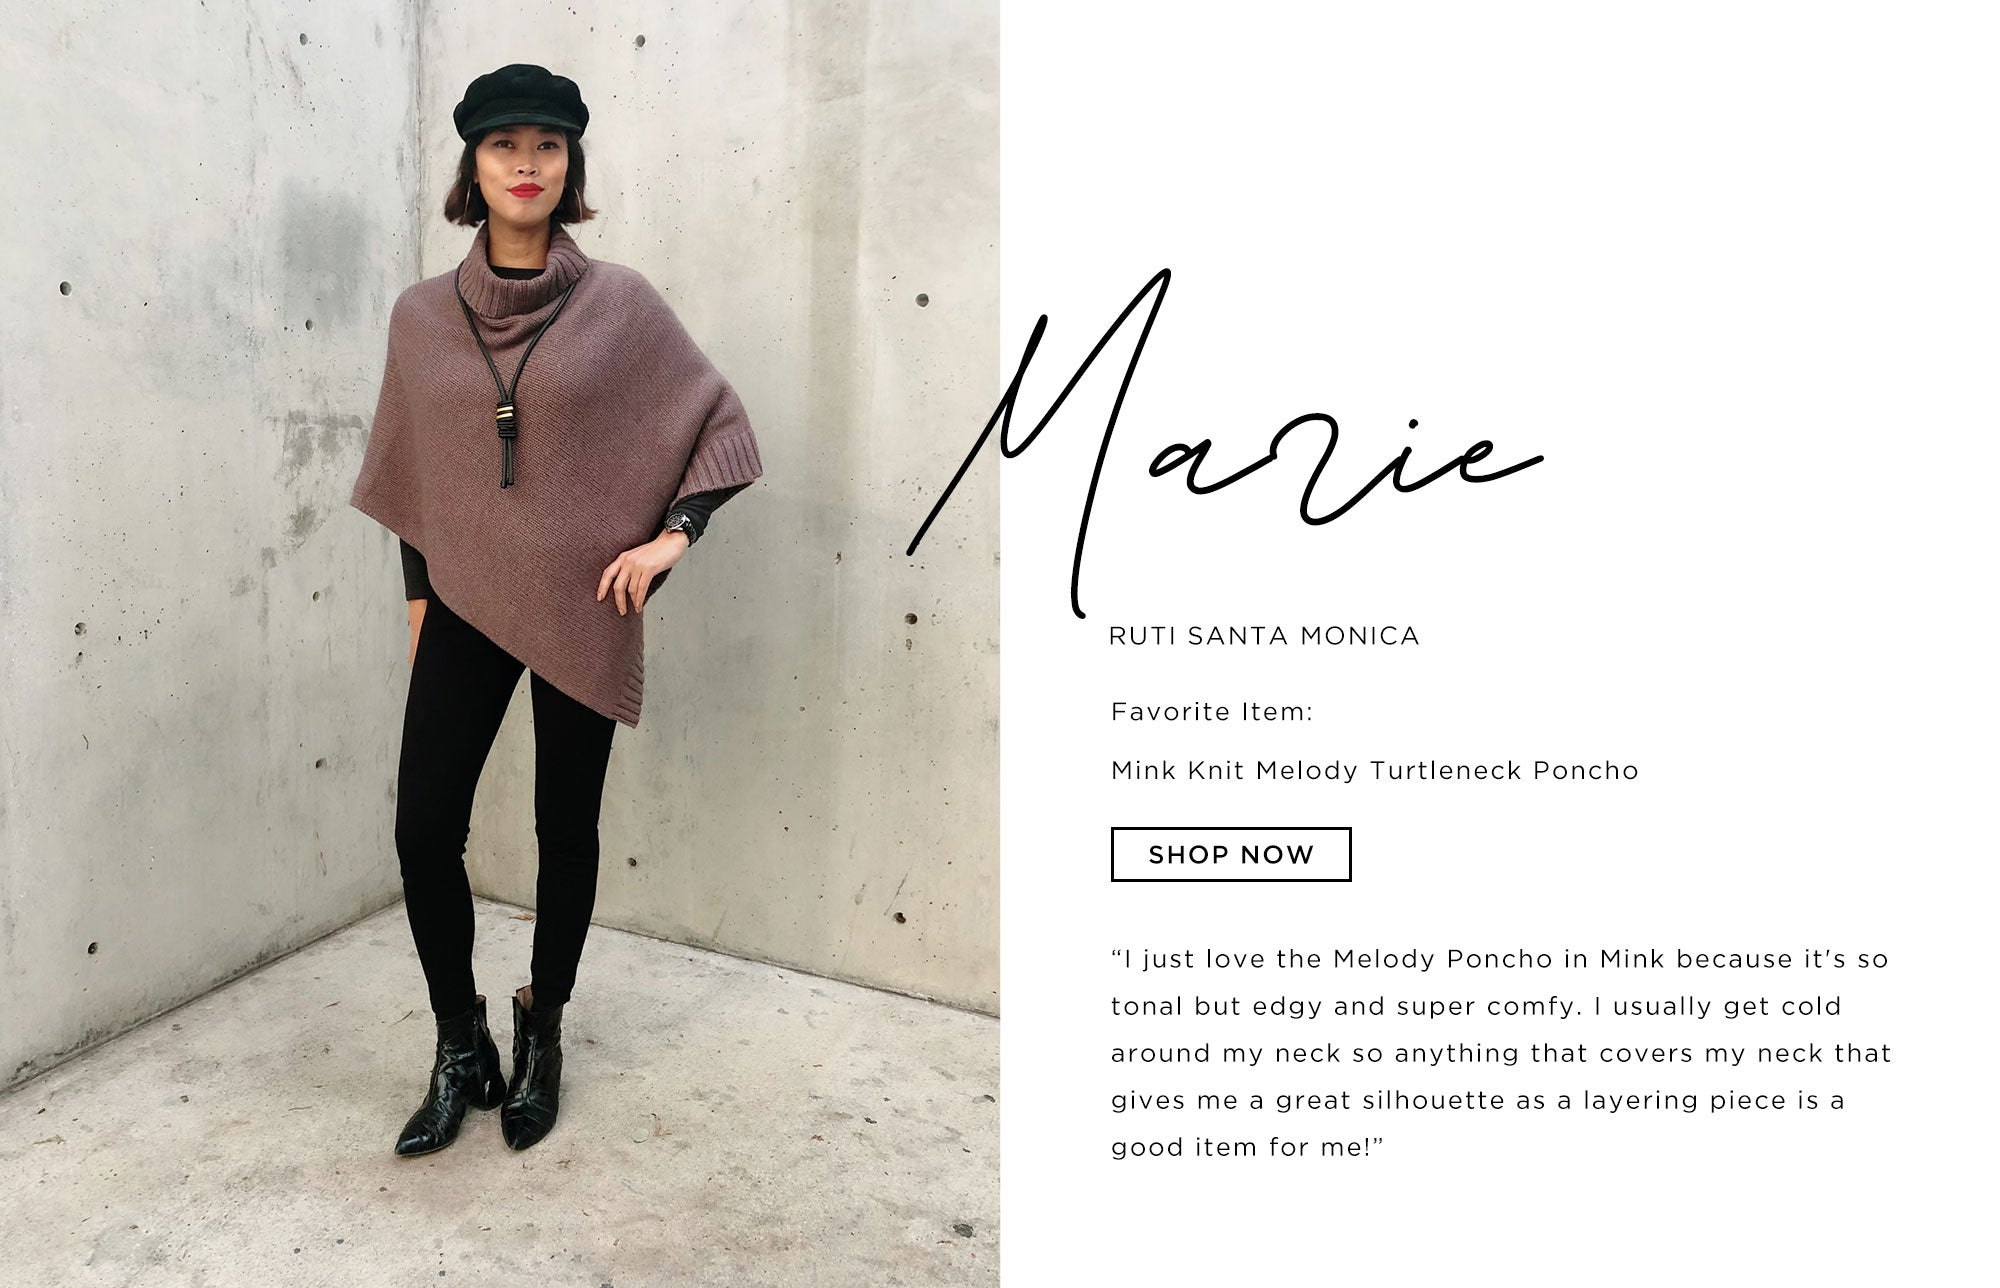 Marie Ruti Santa Monica   I just love the Melody Poncho in Mink because it's so tonal but edgy and super comfy. I usually get cold around my neck so anything that covers my neck that gives me a great silhouette as a layering piece is a good item for me!